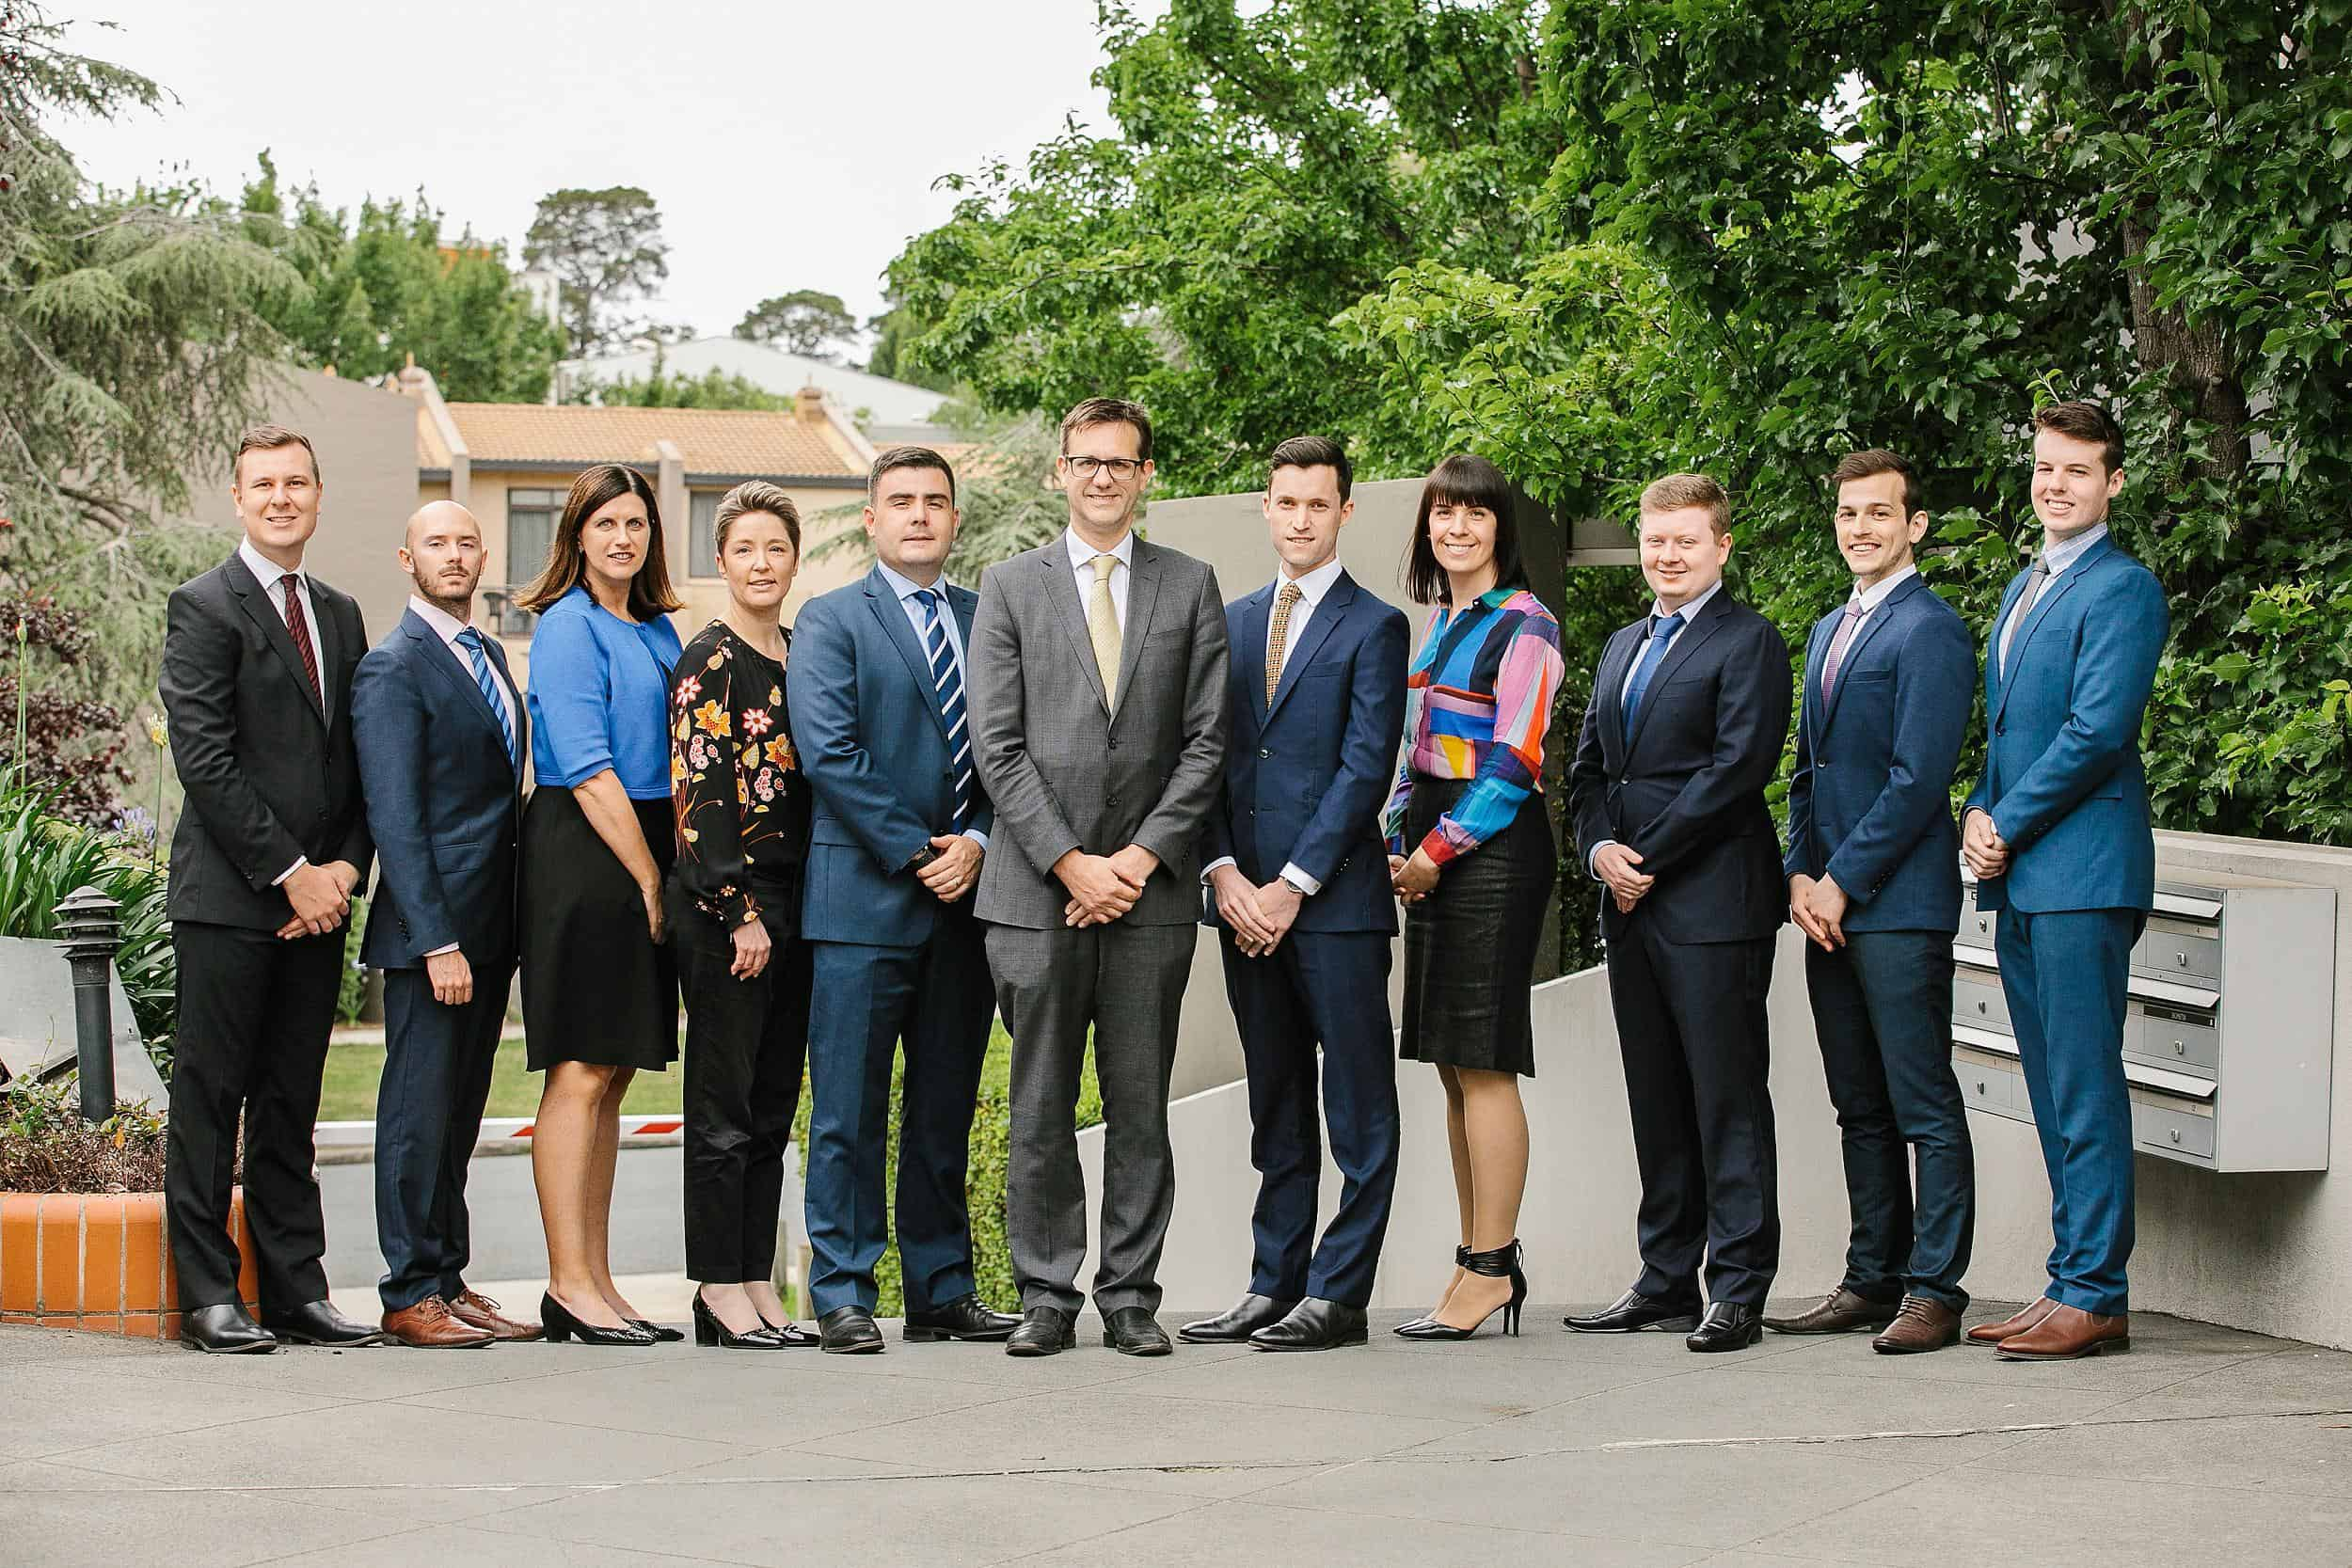 Corporate Group Portrait of 10 people